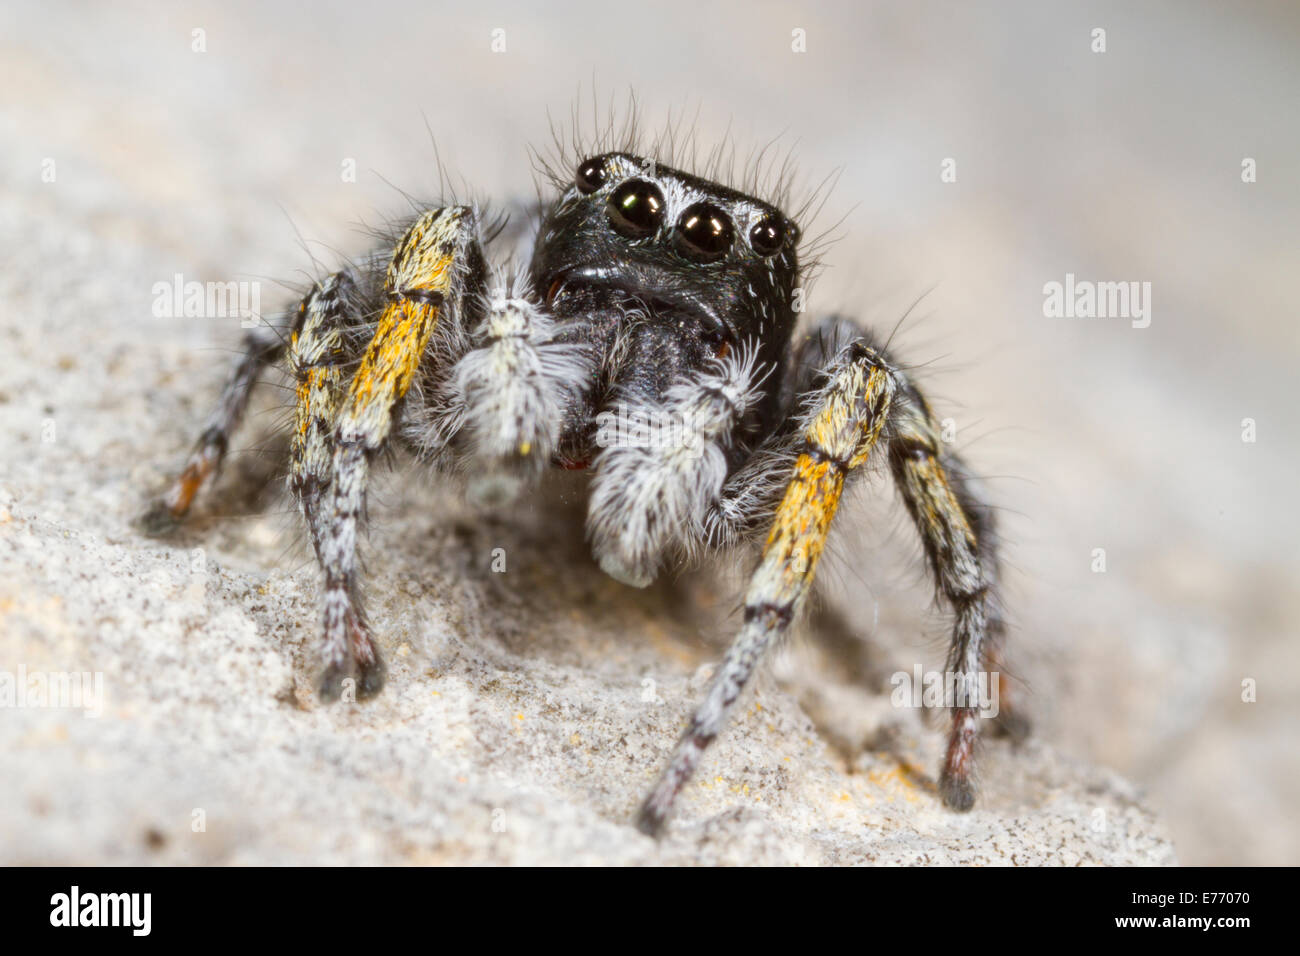 Jumping spider (Philaeus chrysops) portrait of an adult male. Ile St. Martin, Aude, France. - Stock Image